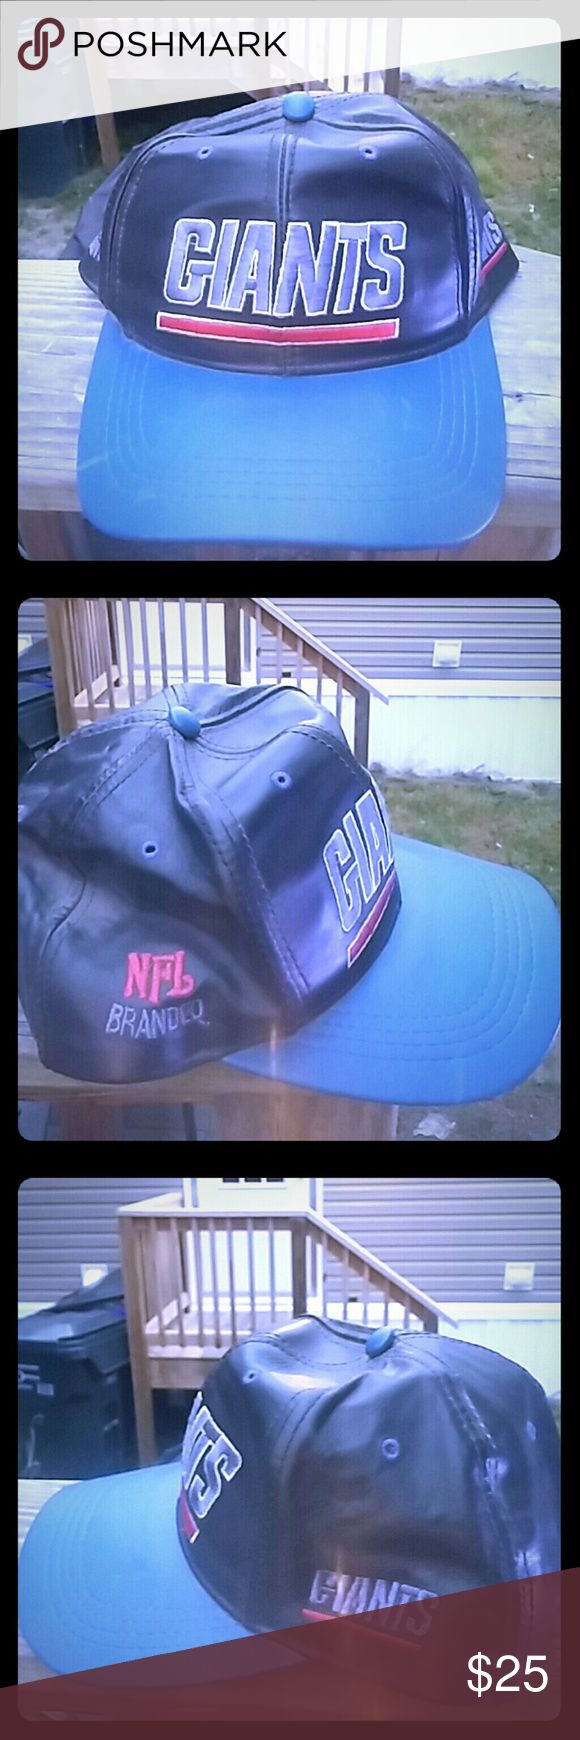 NY Giants Classic Leather Branded Cap One SZ Accessories Hats